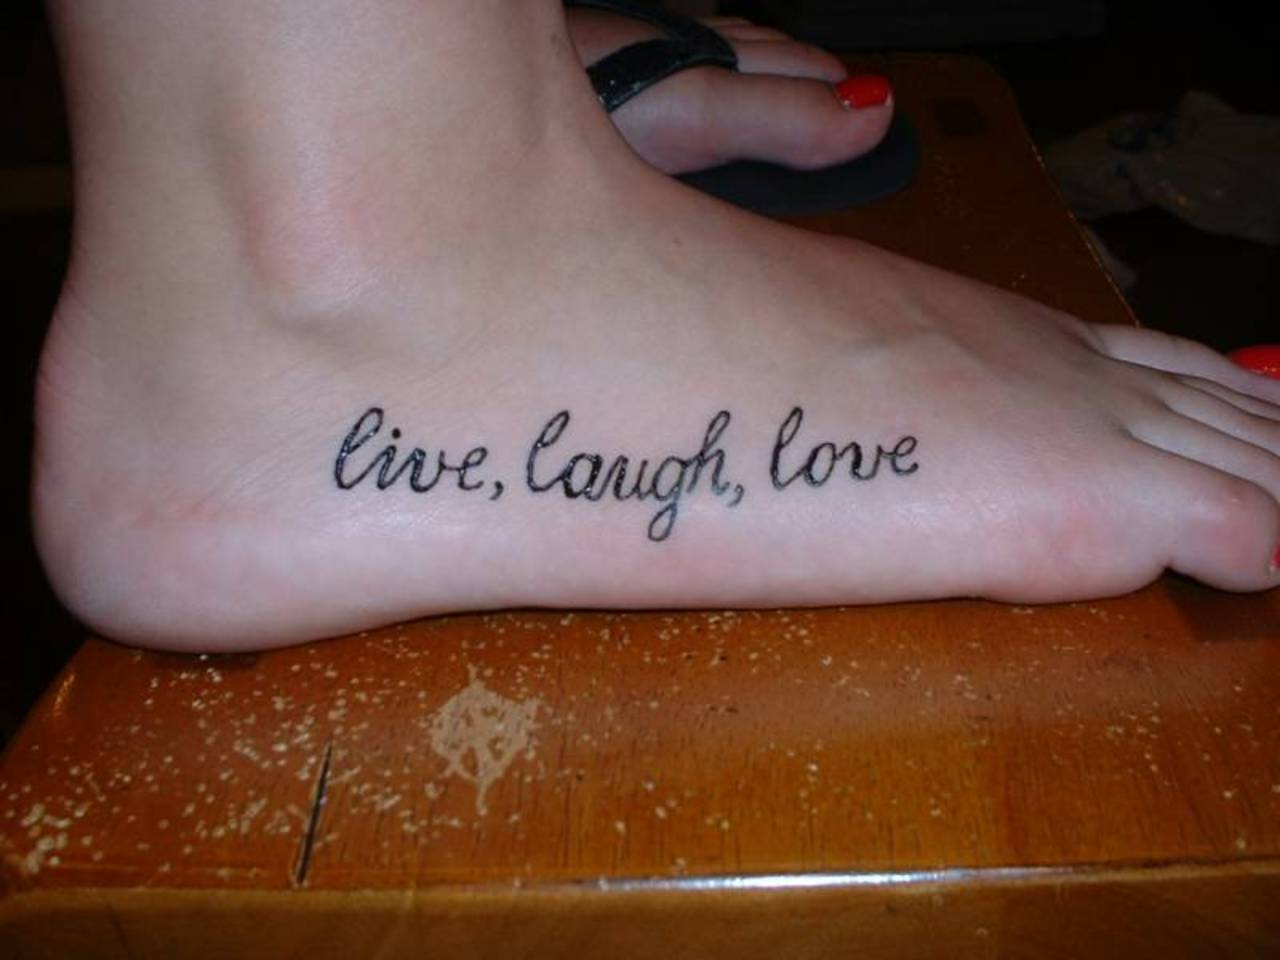 Chinese tattoo symbols for love with flowers live laugh love and flowers tattoo on foot buycottarizona